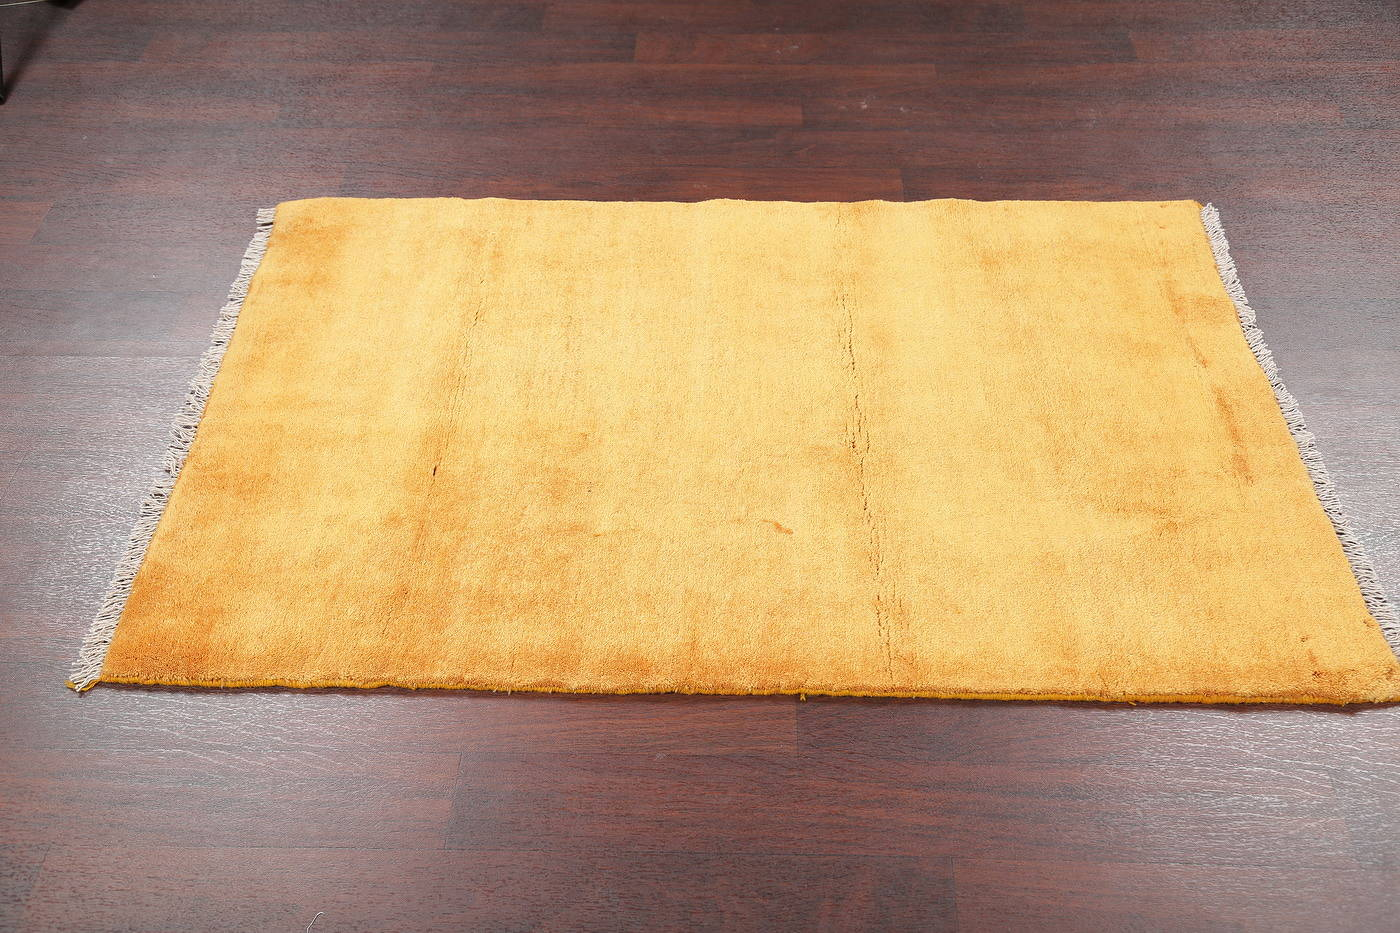 Gold Contemporary Gabbeh Zollanvari Persian Hand-Knotted Wool Rug 3x5